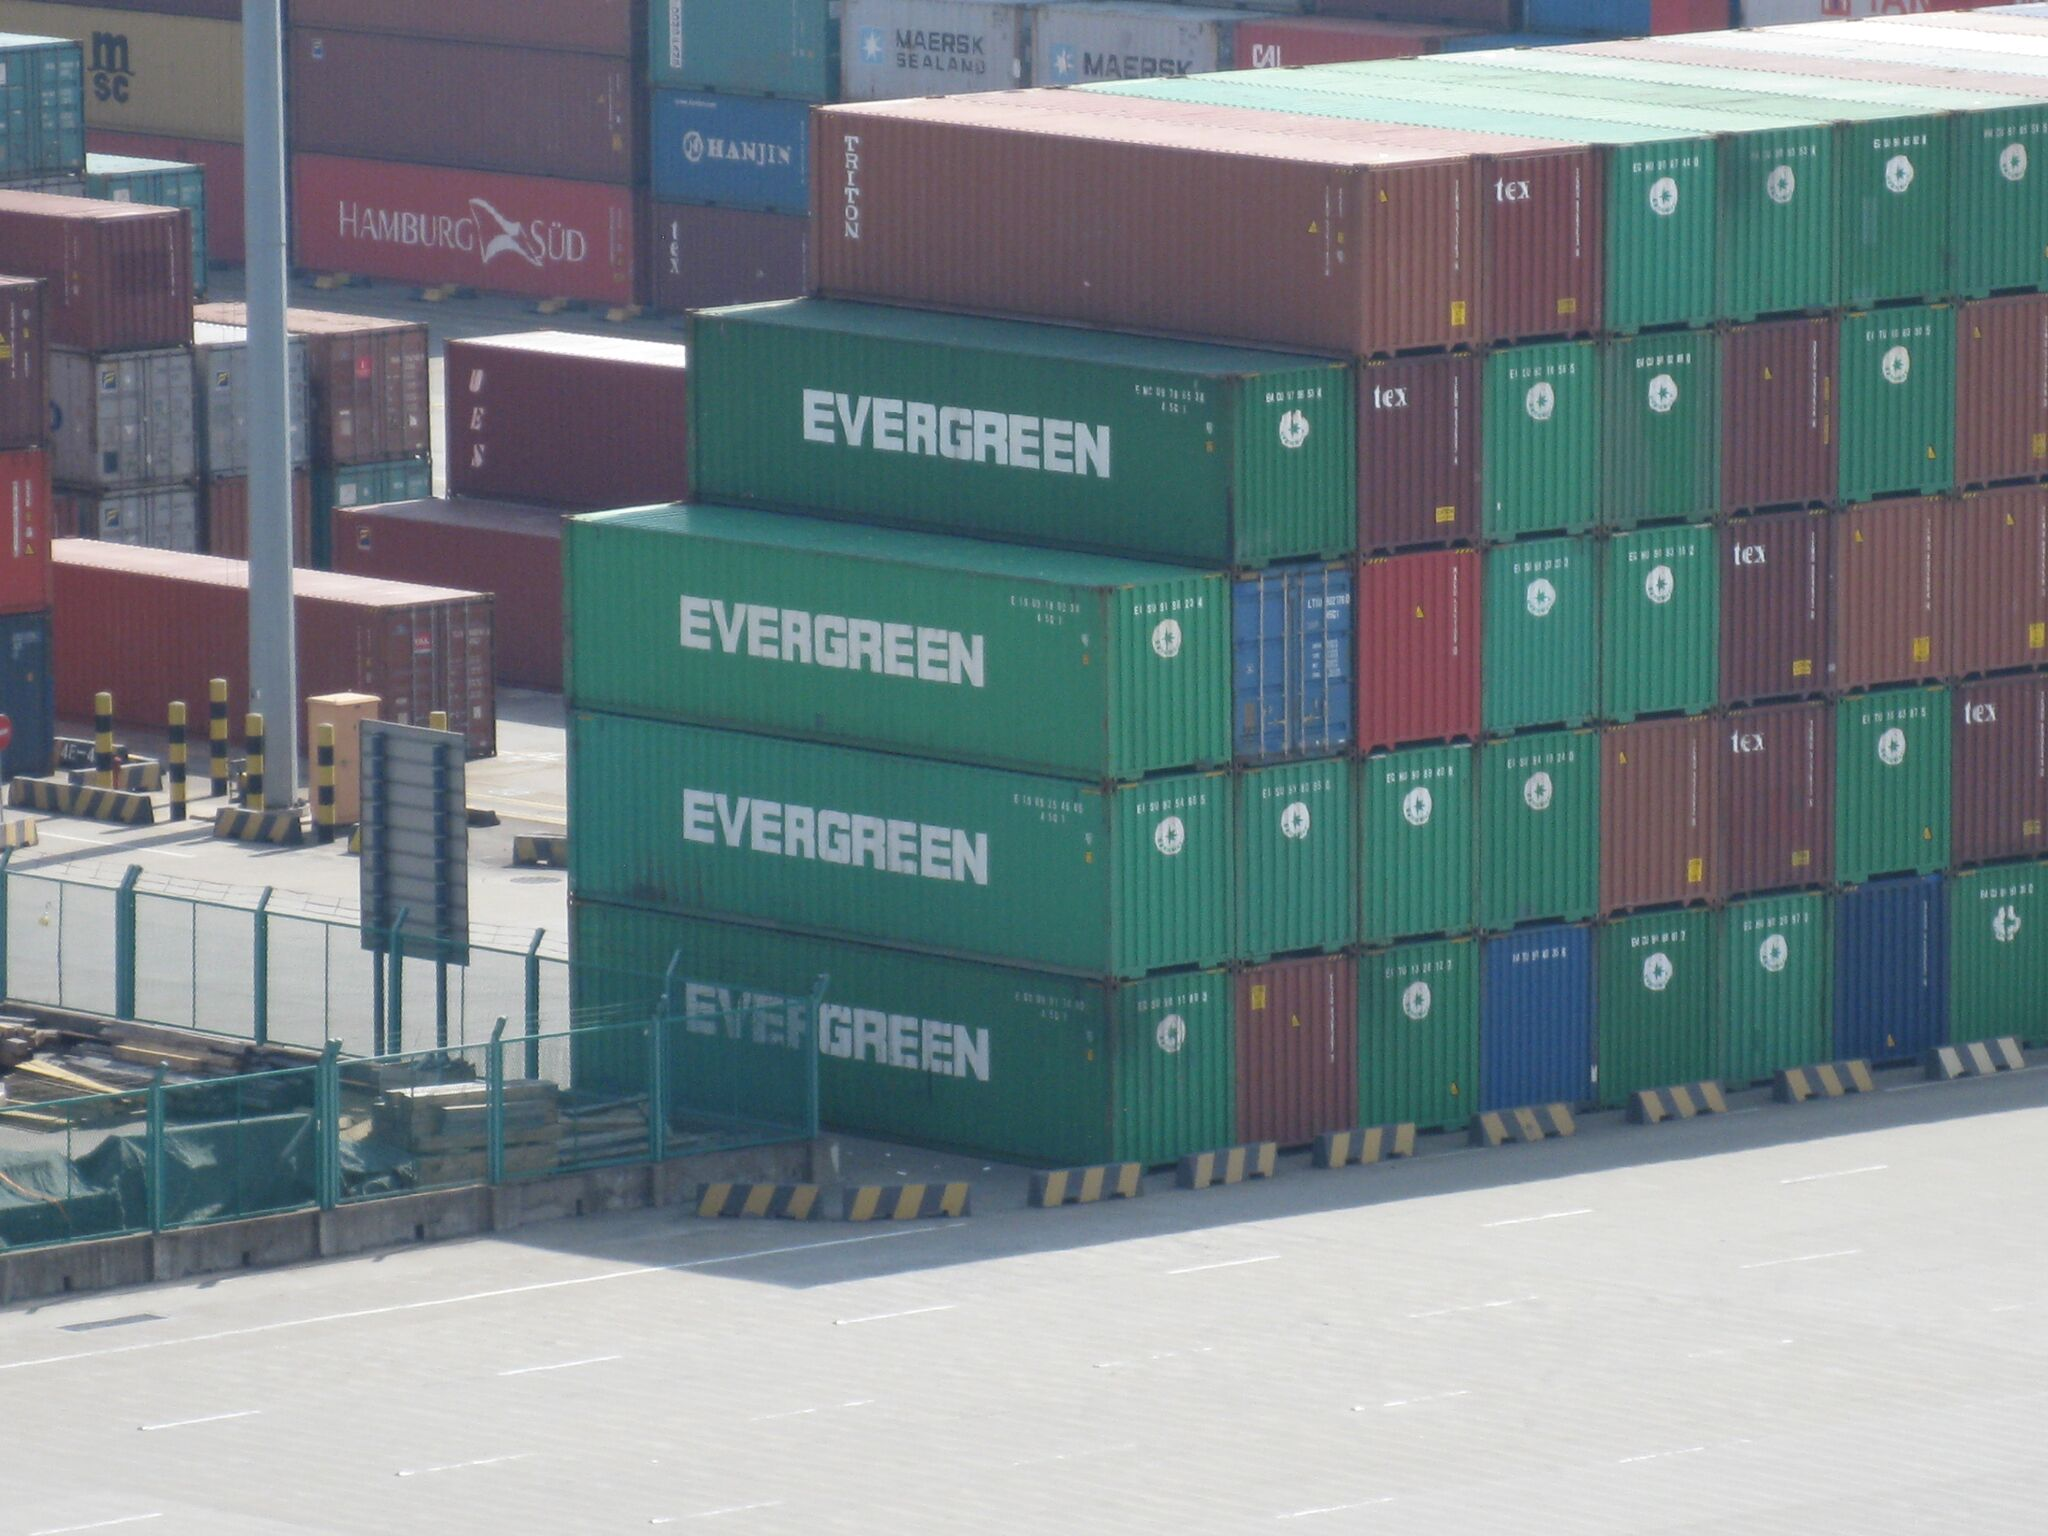 Evergreen shipping containers